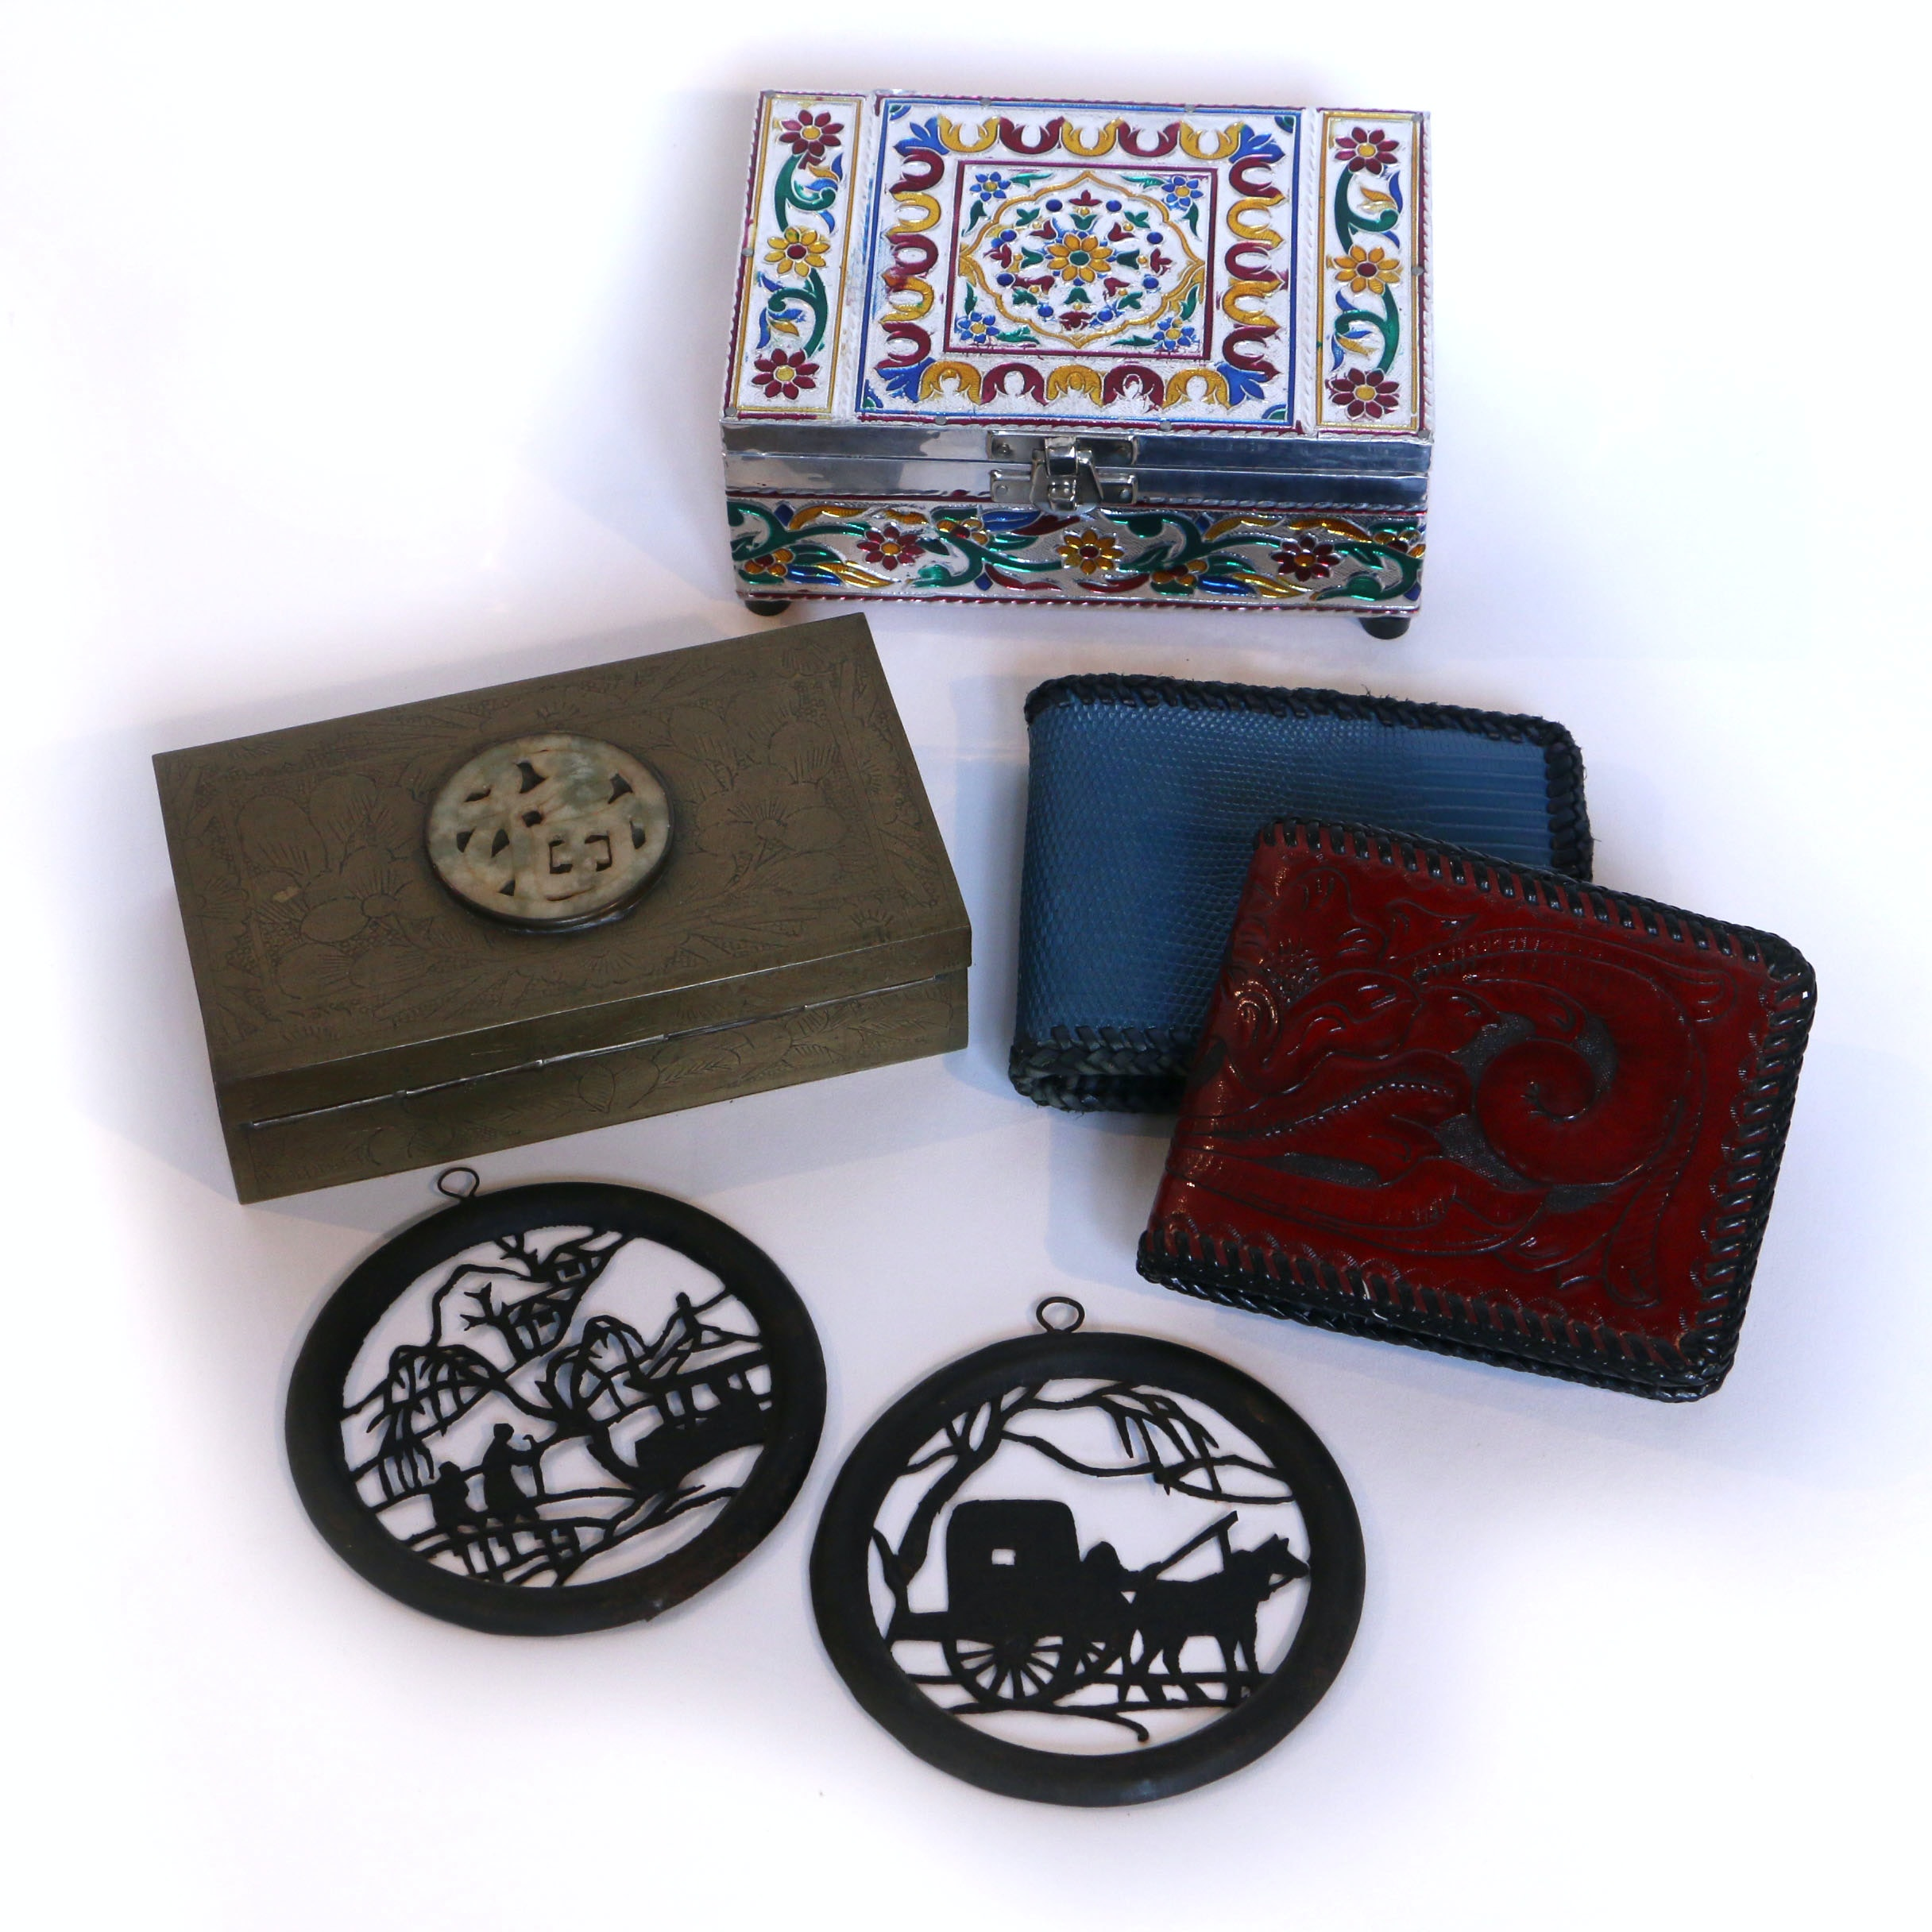 East Asian Trinket Boxes, Wall Medallions and Wallets